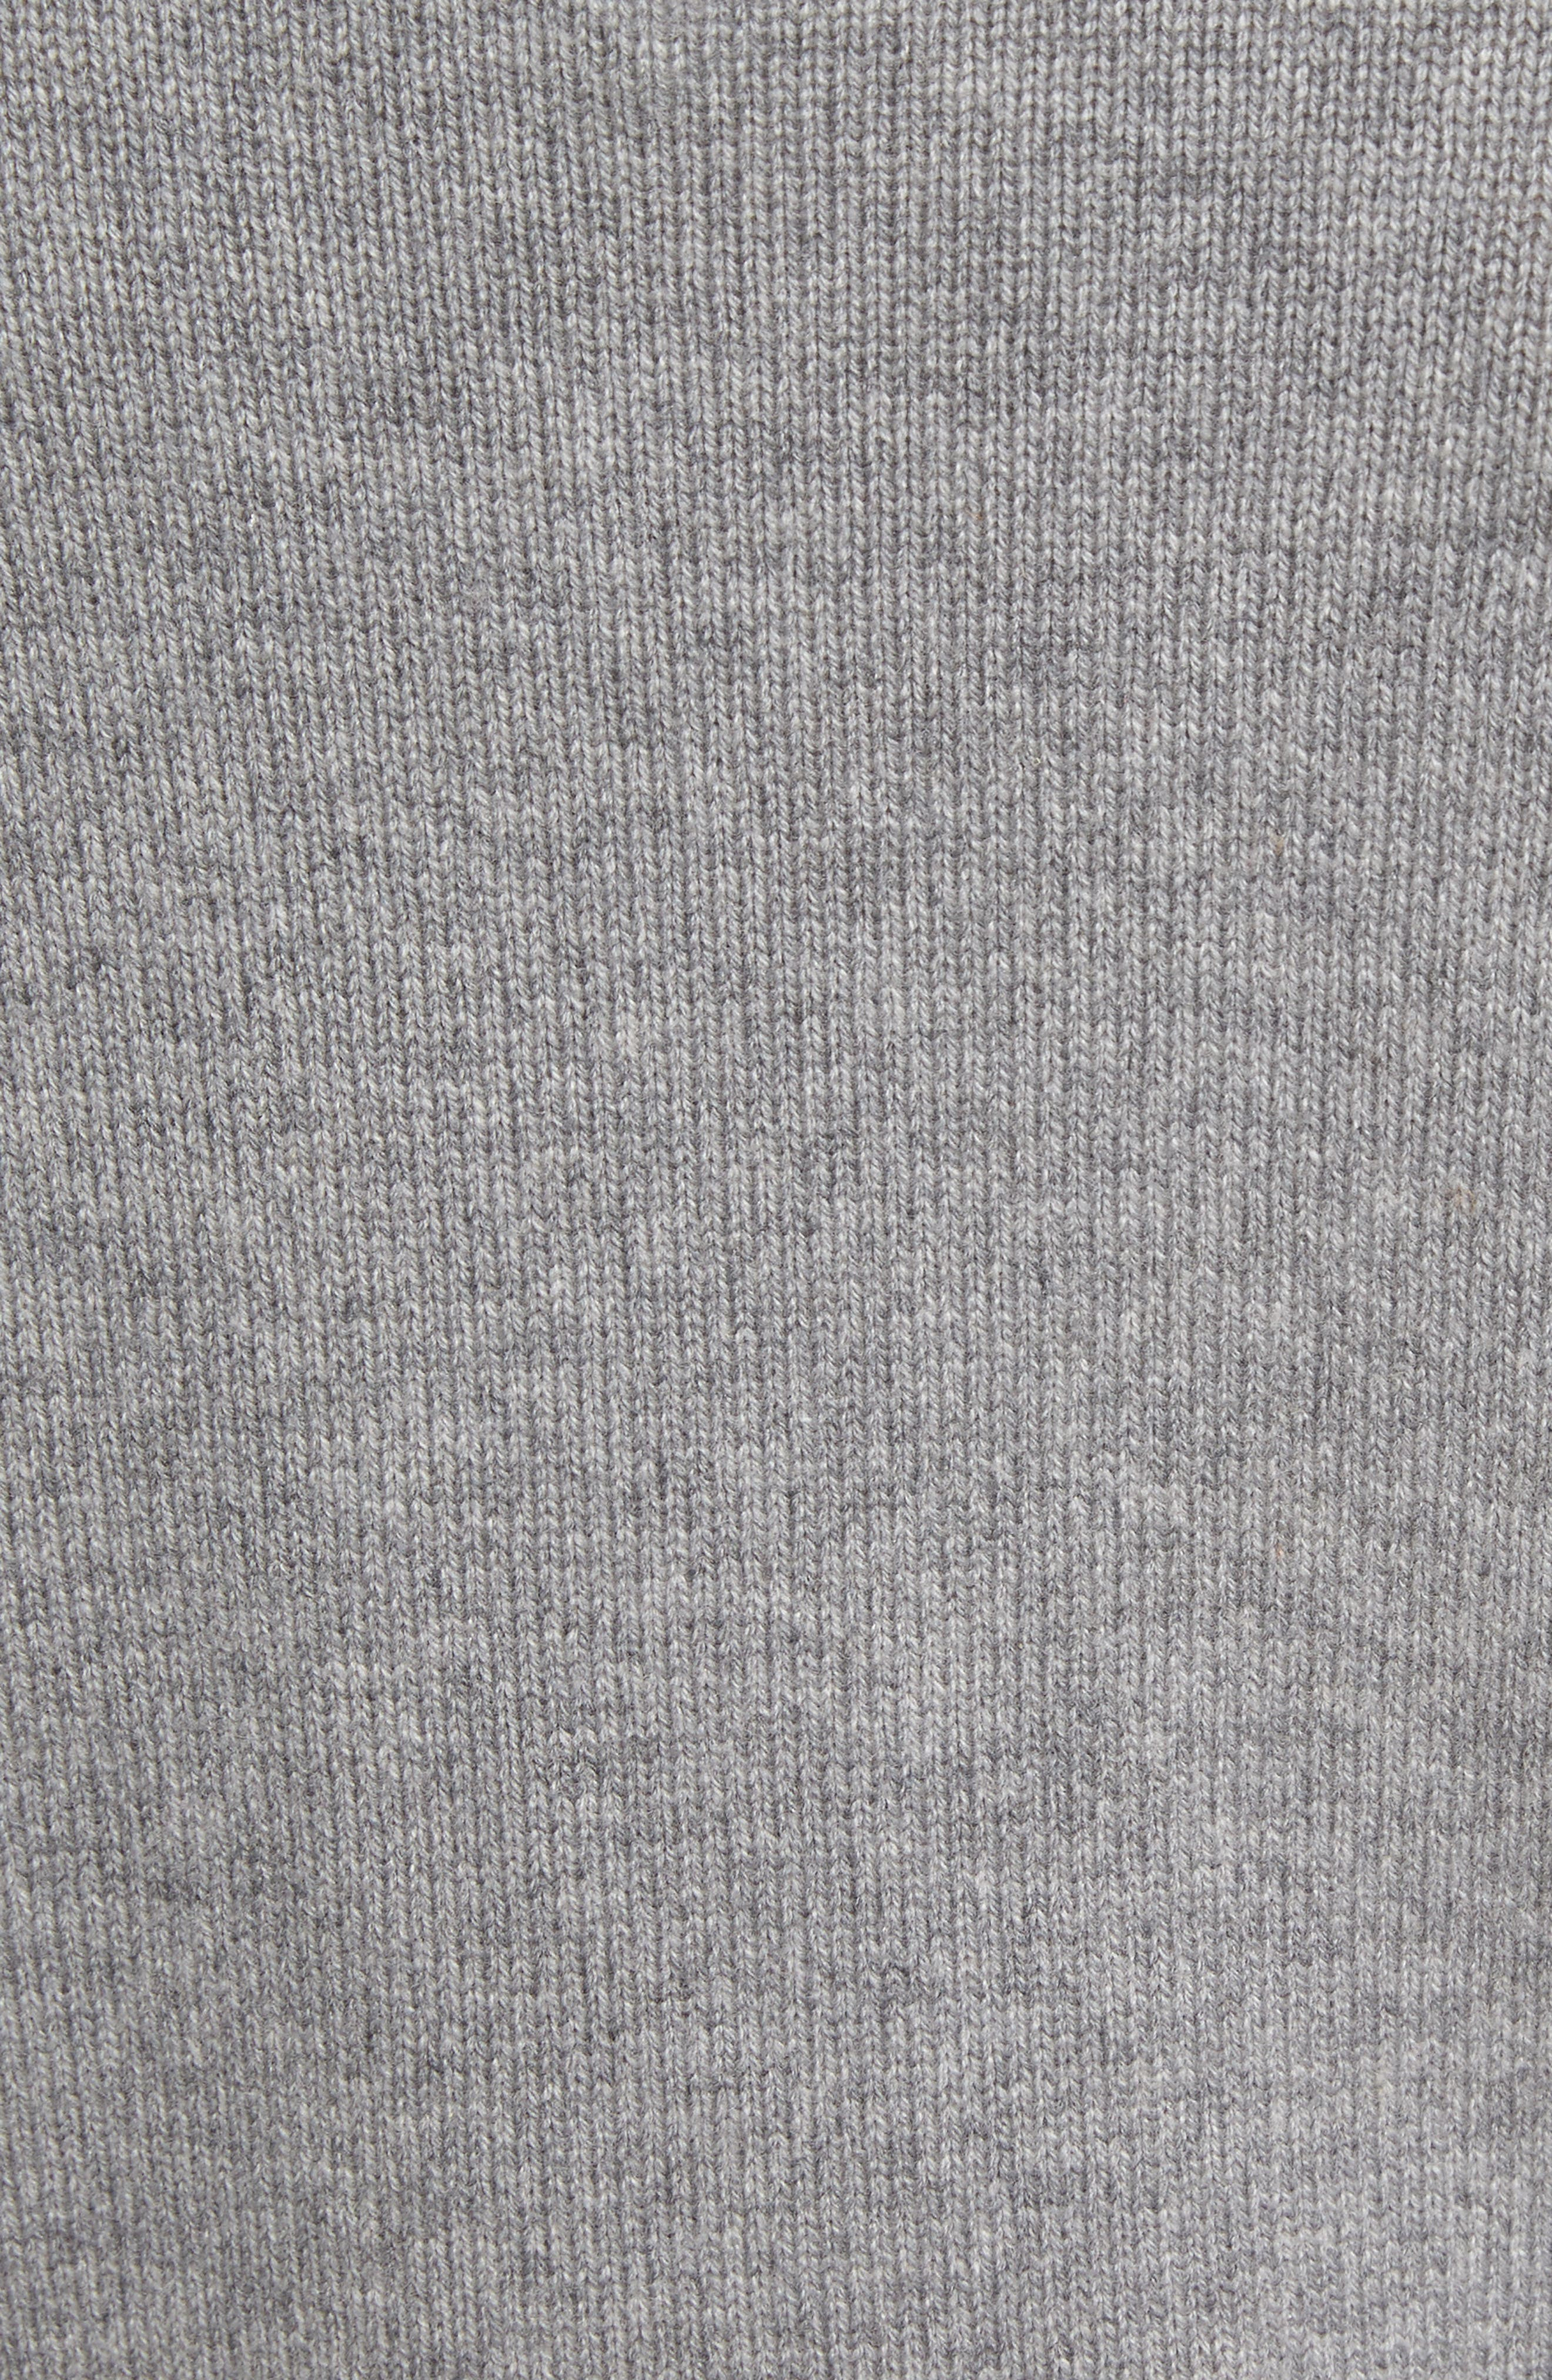 Affie Wool & Cashmere Sweater,                             Alternate thumbnail 10, color,